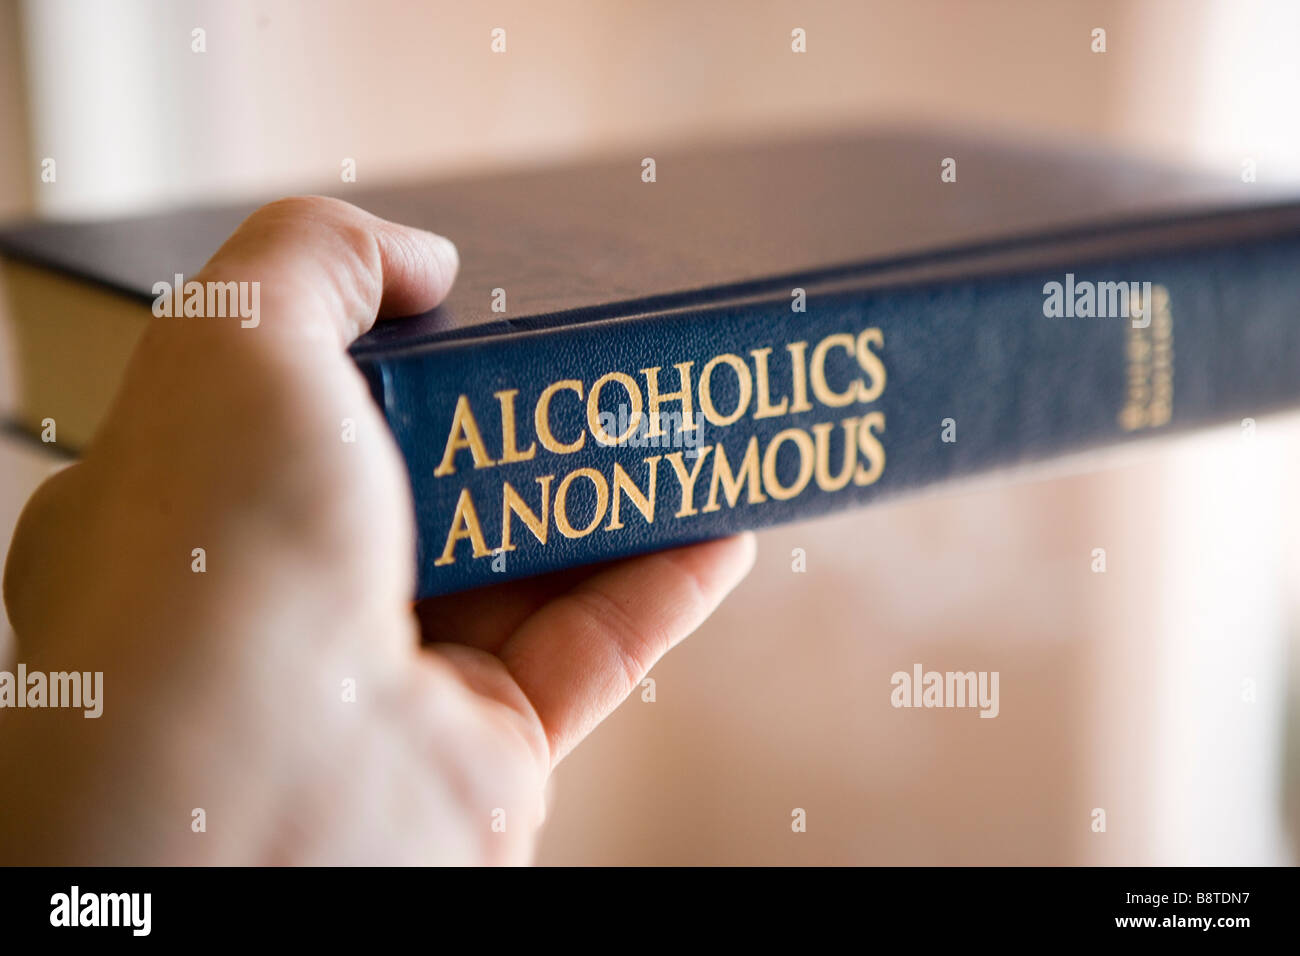 dating someone in alcoholics anonymous